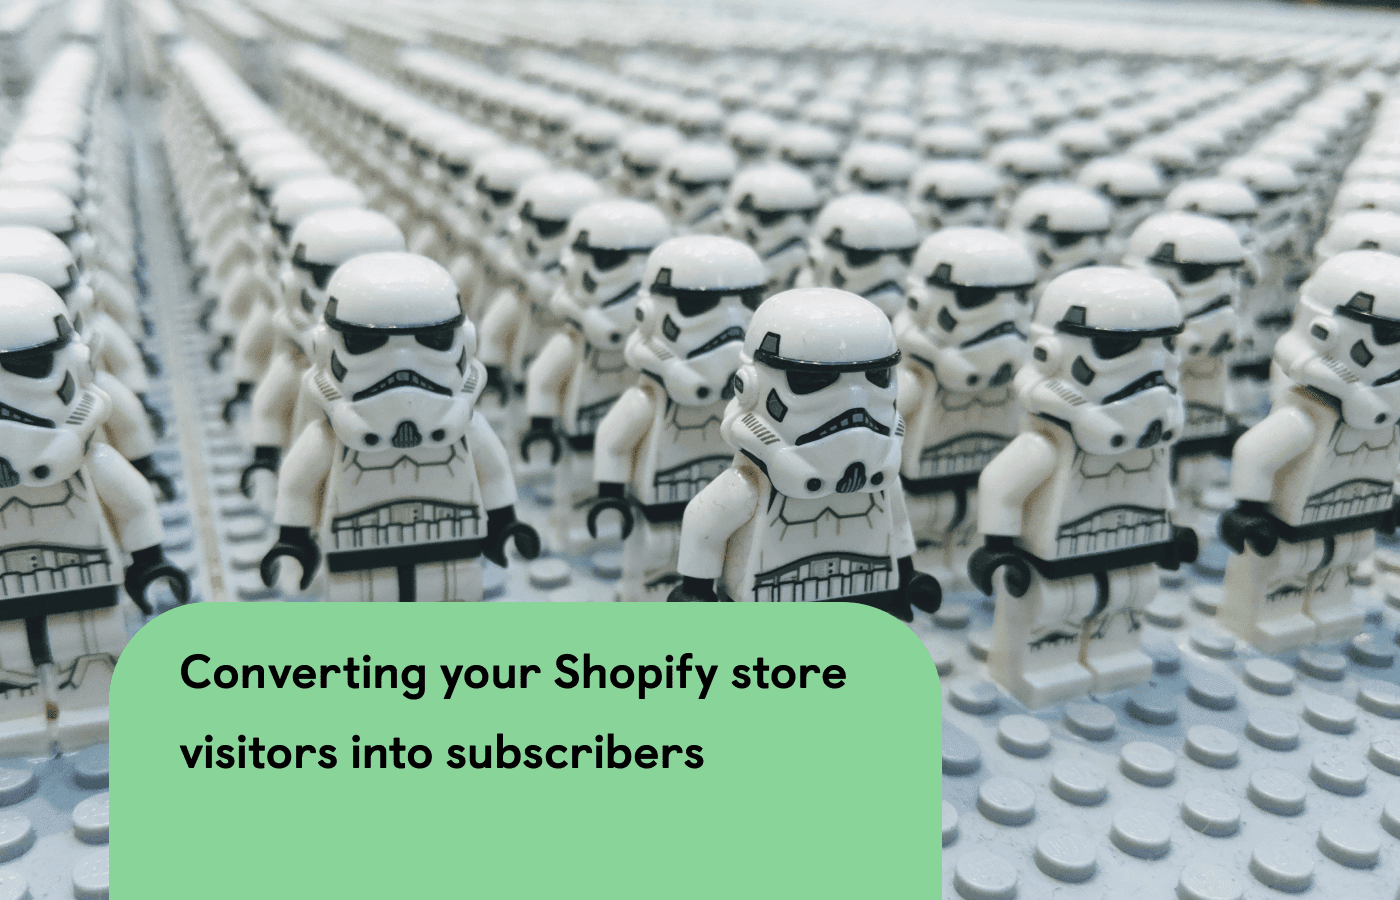 4 Ways to Convert Shopify Traffic into Subscribers (Leads)